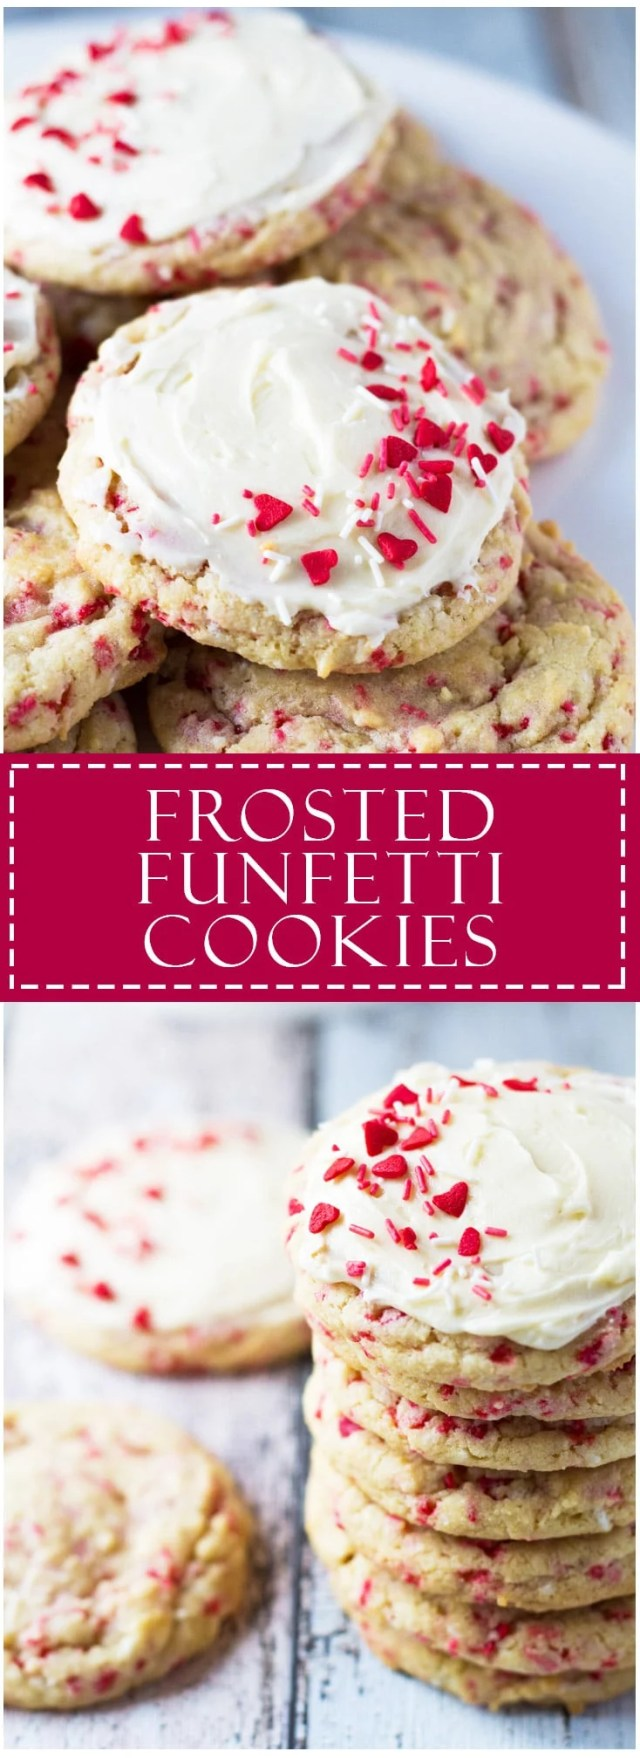 Frosted Funfetti Cookies | Marsha's Baking Addiction